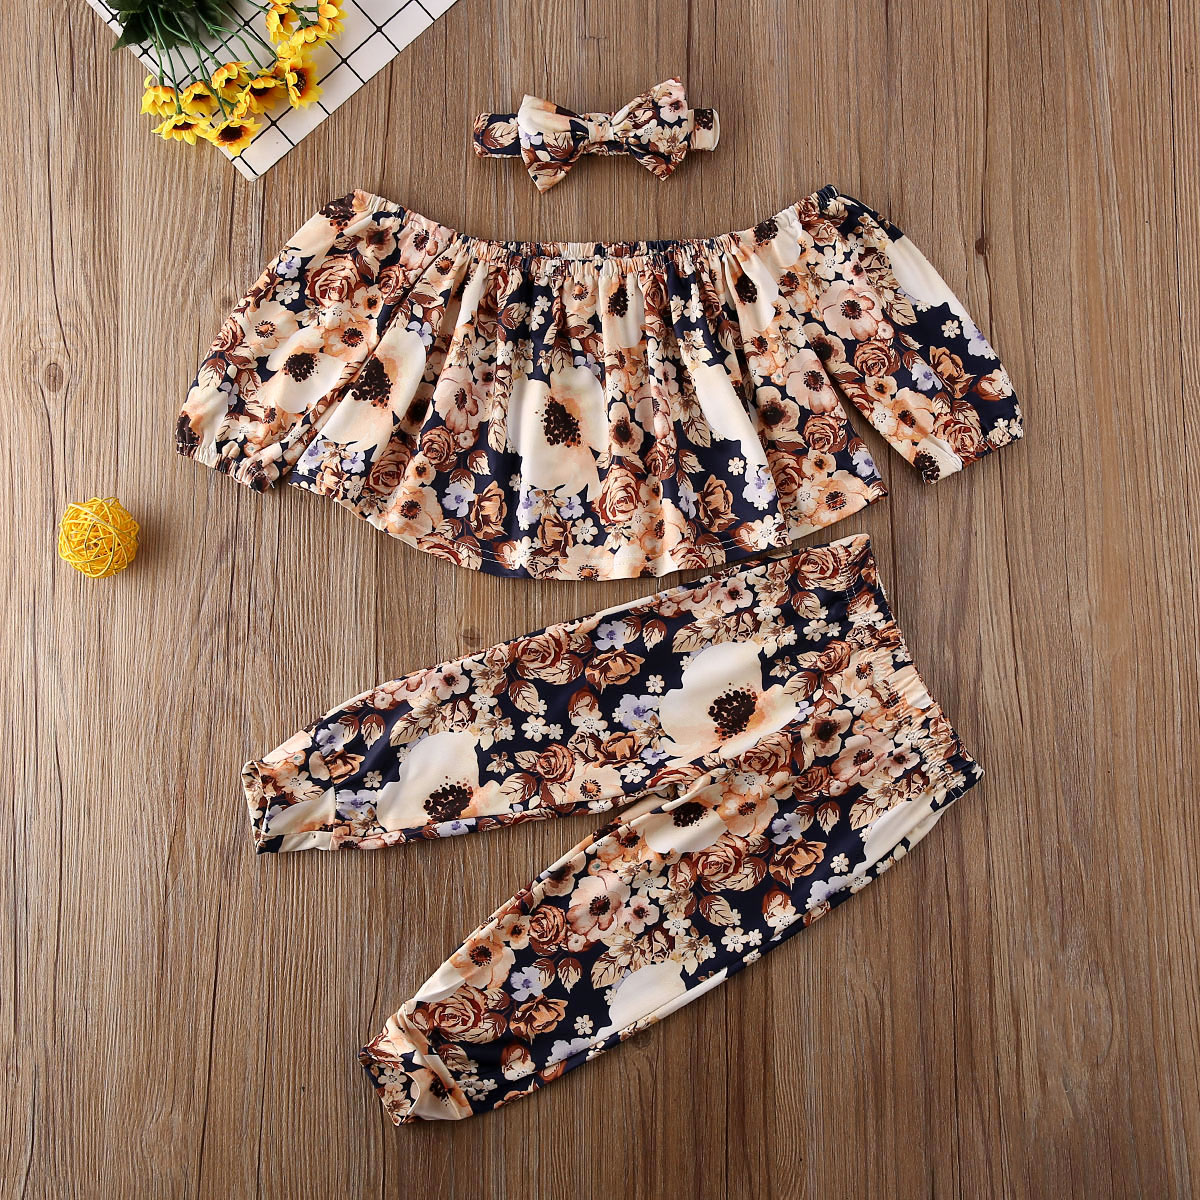 Pudcoco Toddler Baby Girl Clothes Off Shoulder Flower Print Crop Tops Long Pants Headband 3Pcs Outfits Cotton Clothes Autumn Set